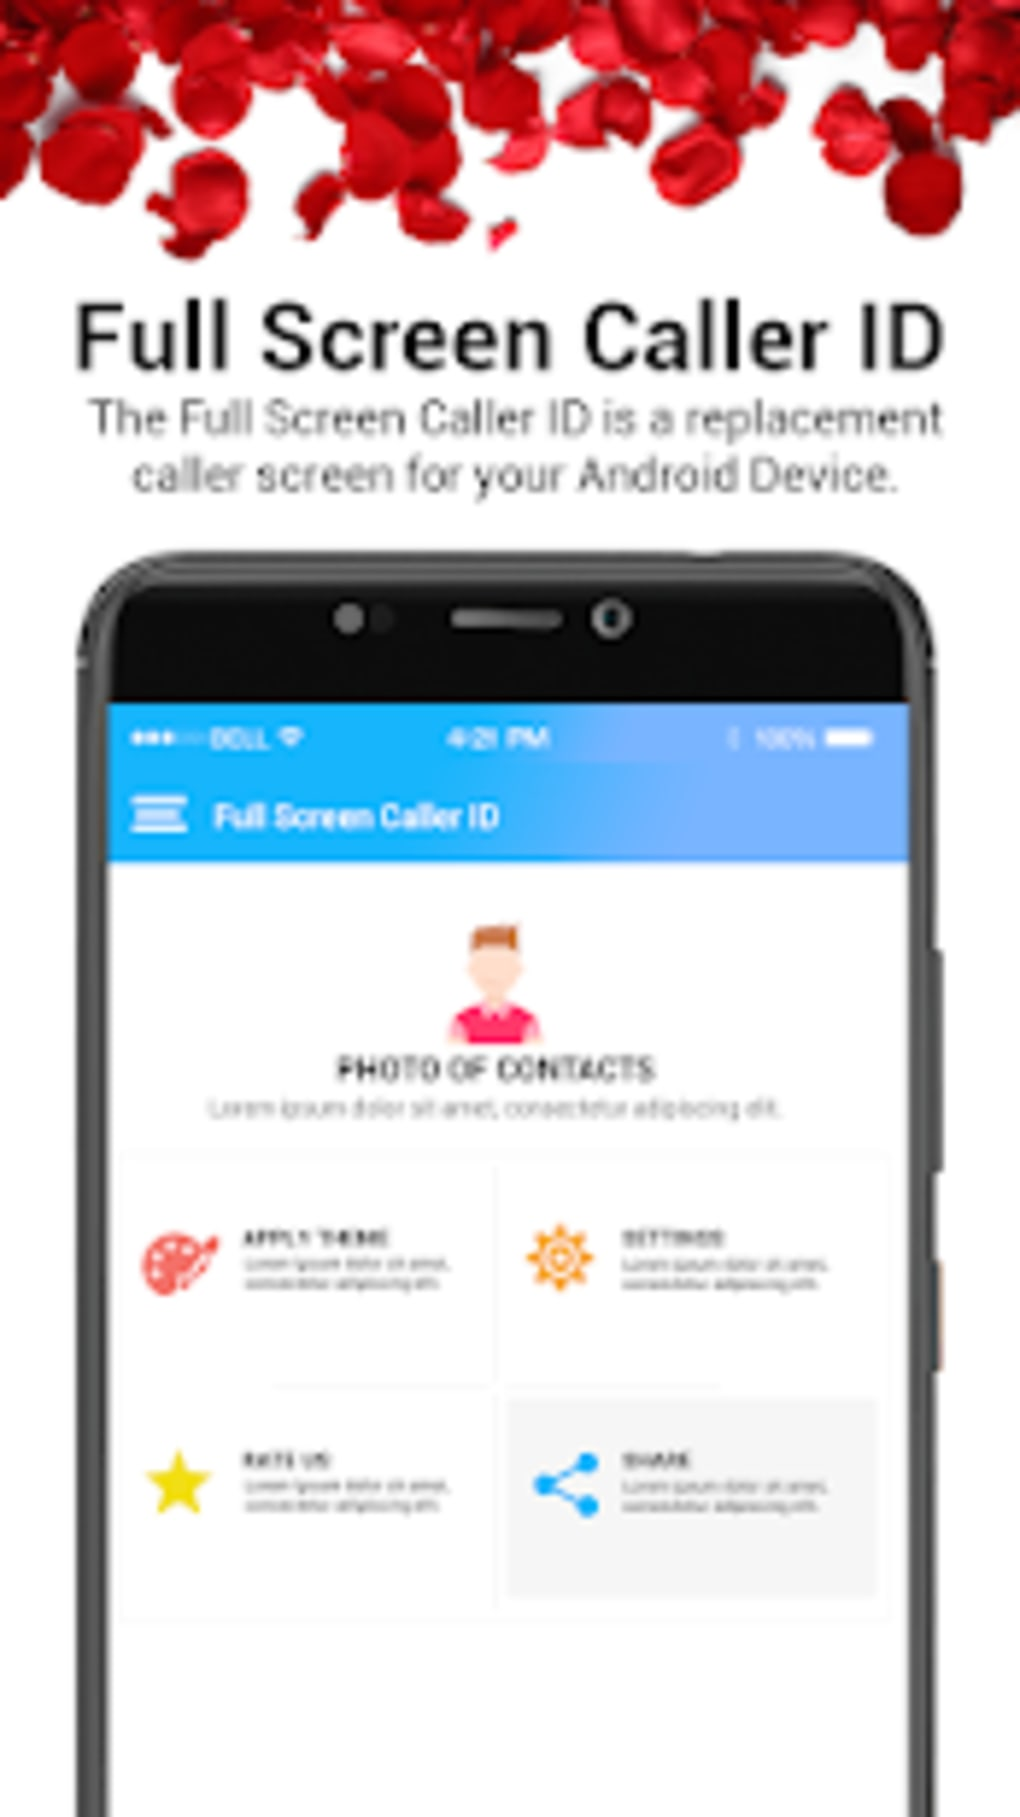 Full Screen Caller ID - truecaller for Android - Download